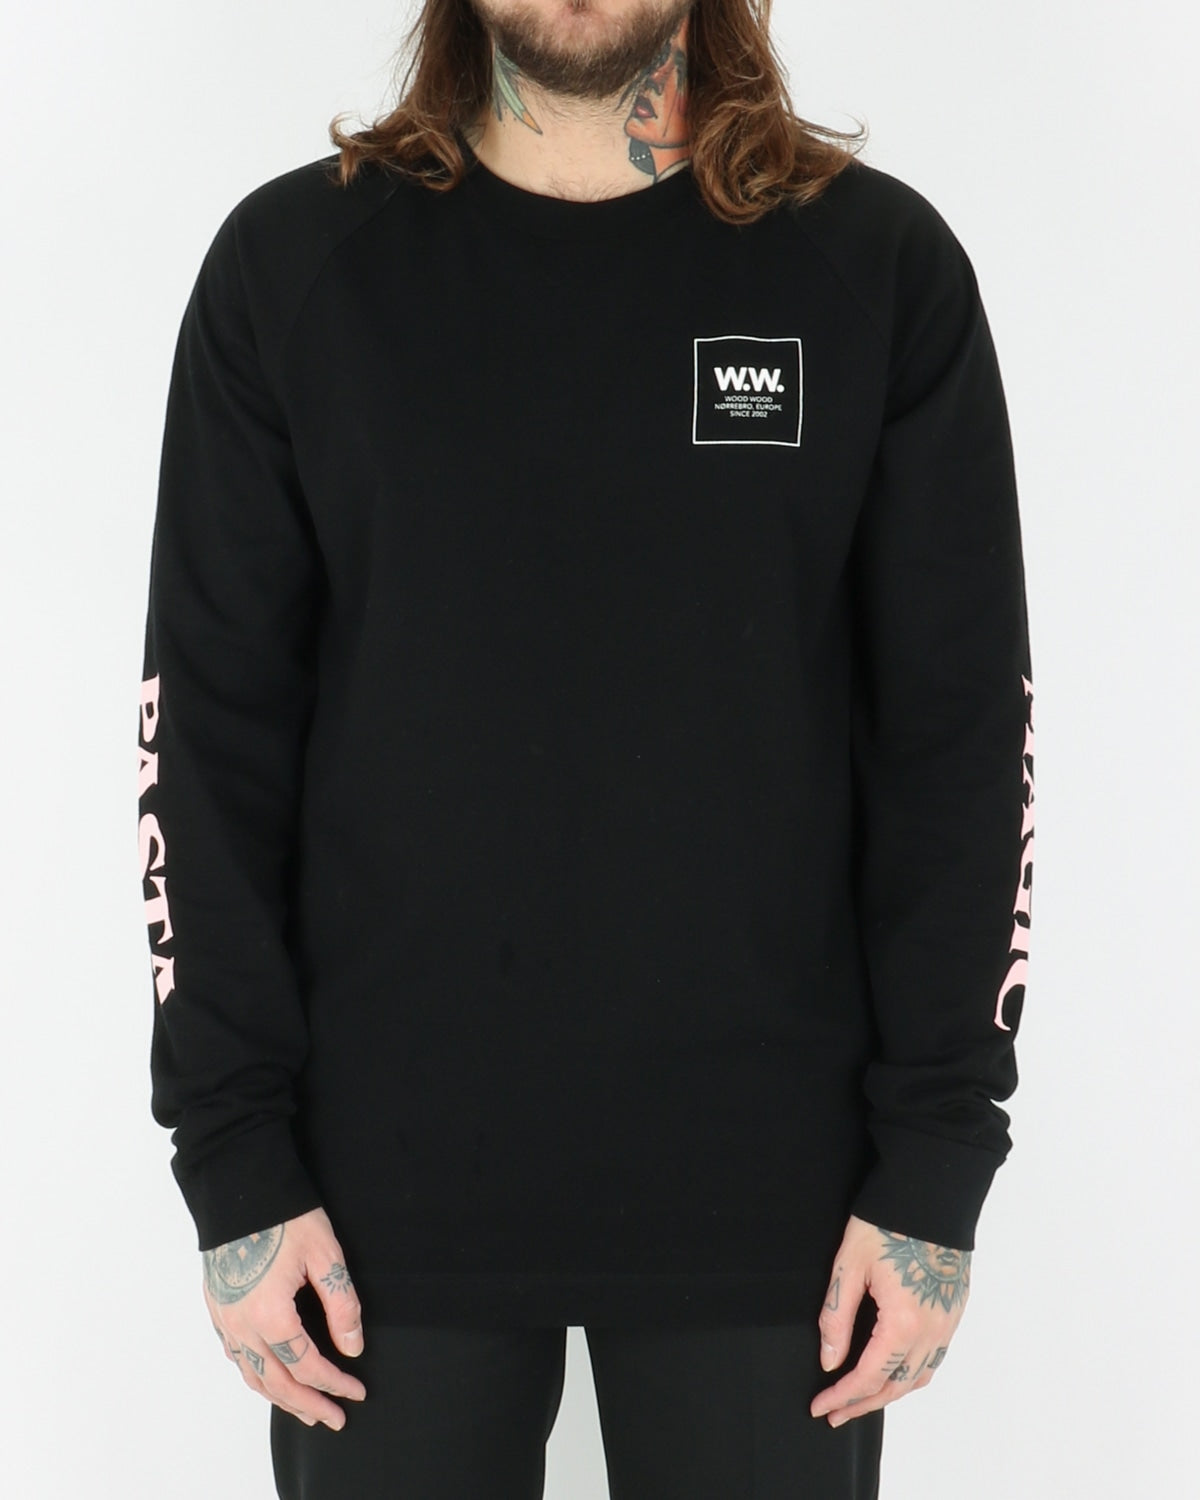 wood wood_han longsleeve_black_view_1_4